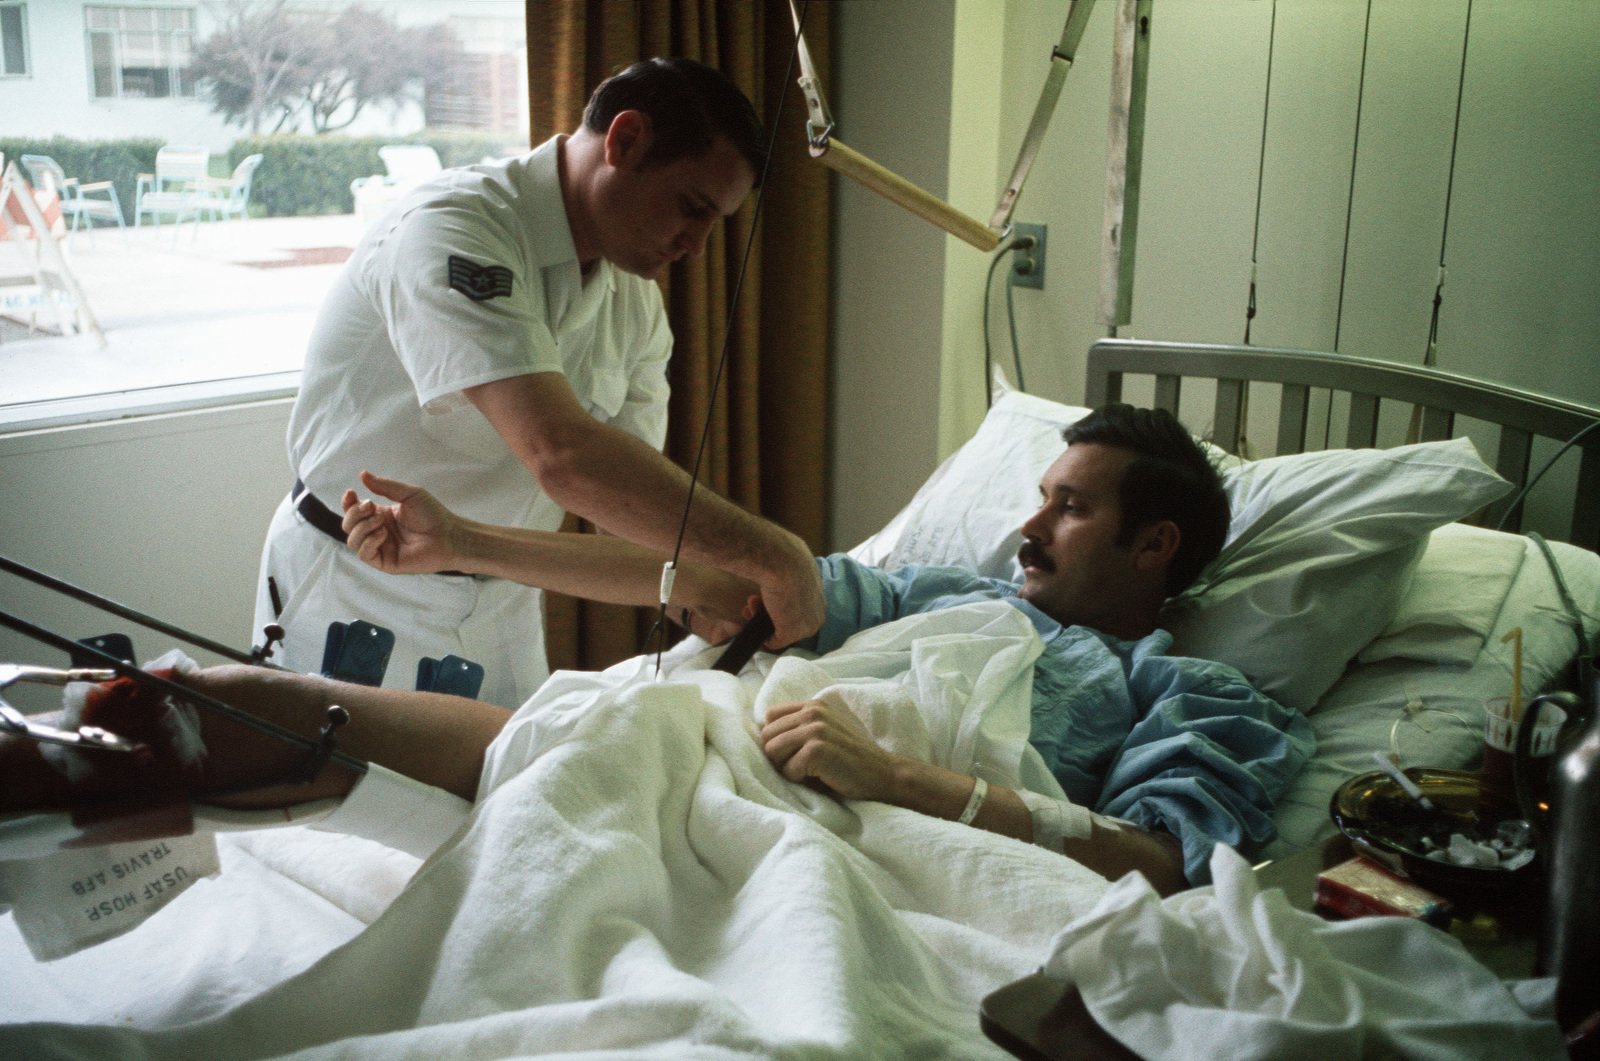 STAFF Sergeant Roy Madden, a recently released prisoner of war, recuperates at the Travis medical facility